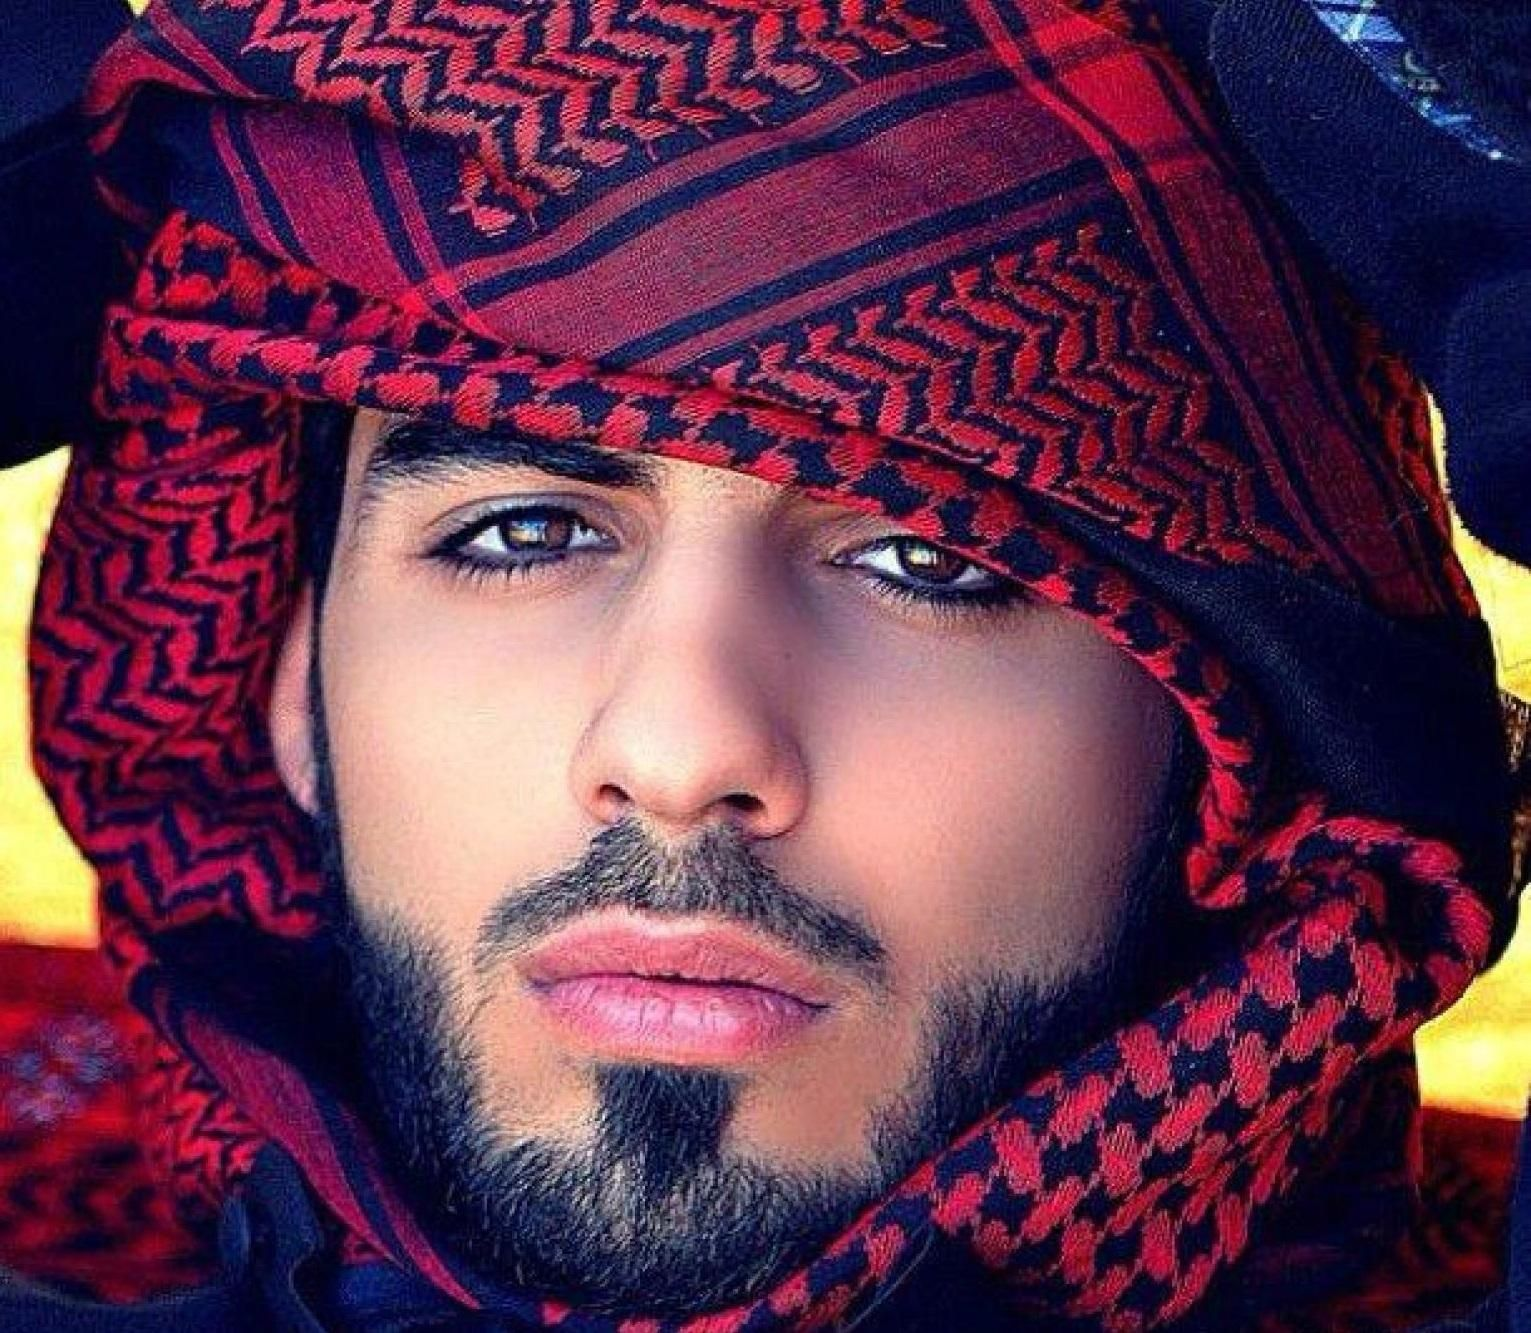 Omar Borkan Al Gala Media 319897.6 Wallpaper | Honey honey ...